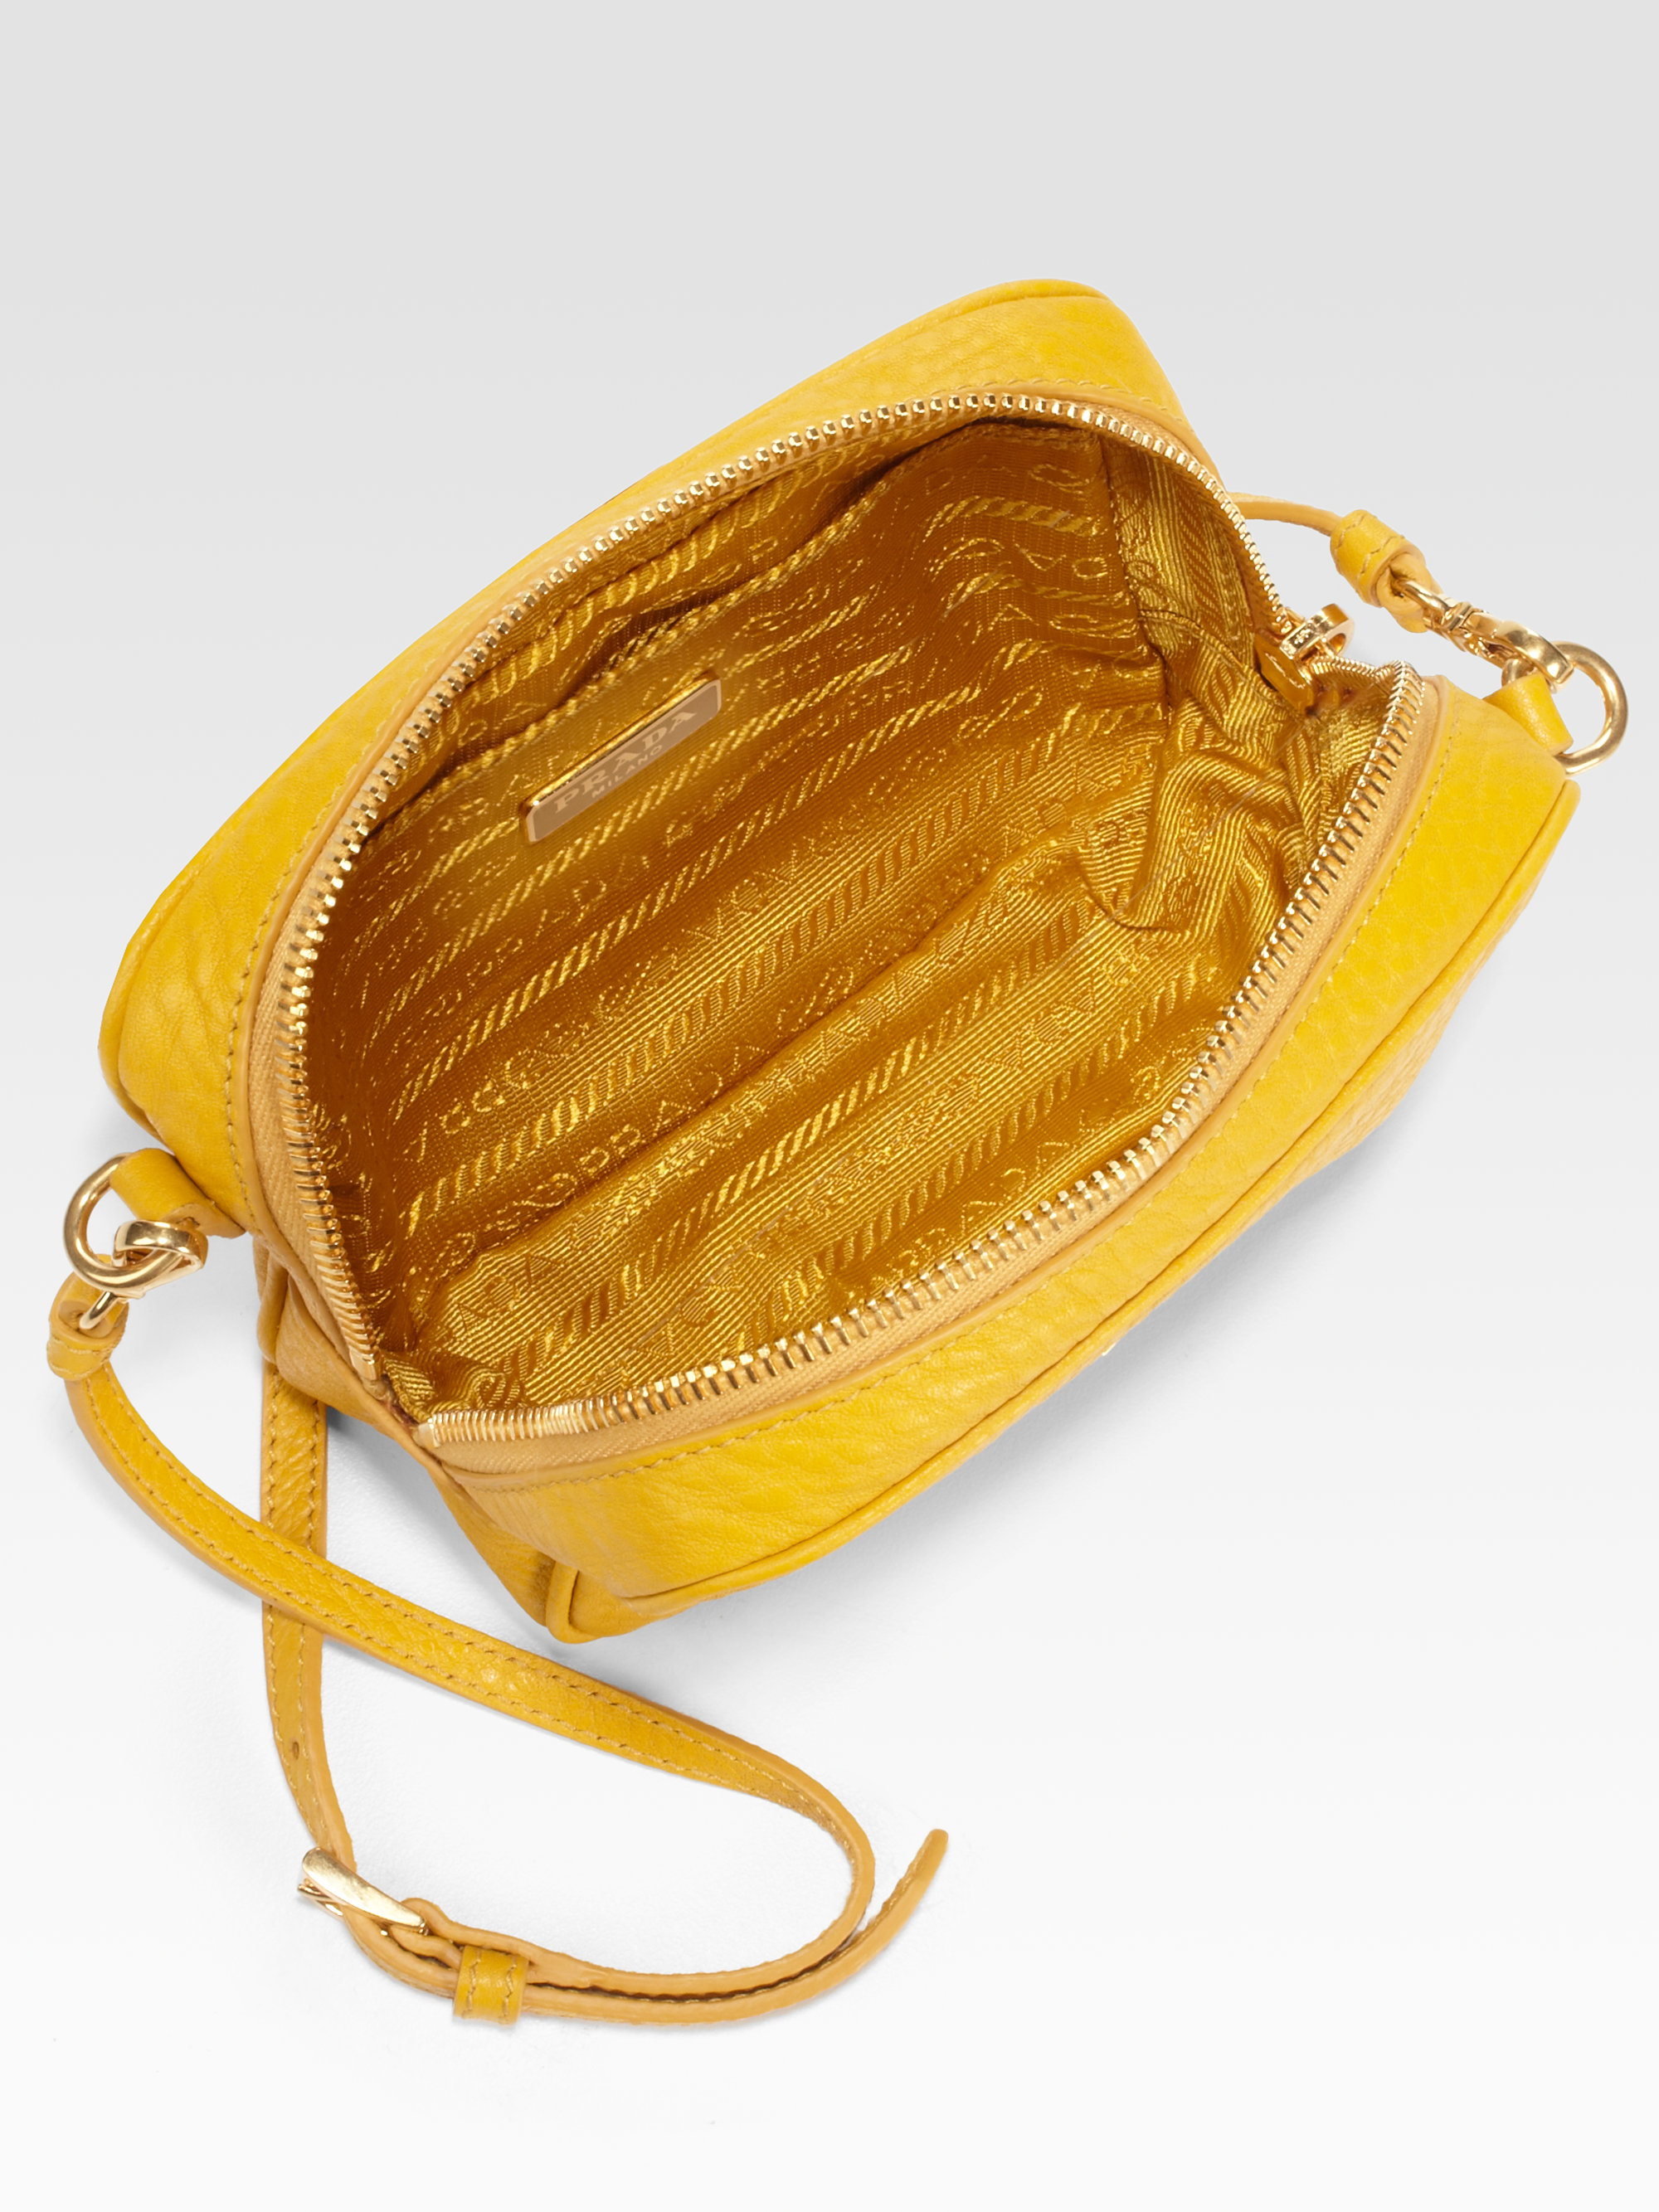 Prada Mini Vitello Daino Crossbody Bag in Yellow (mimosa) | Lyst